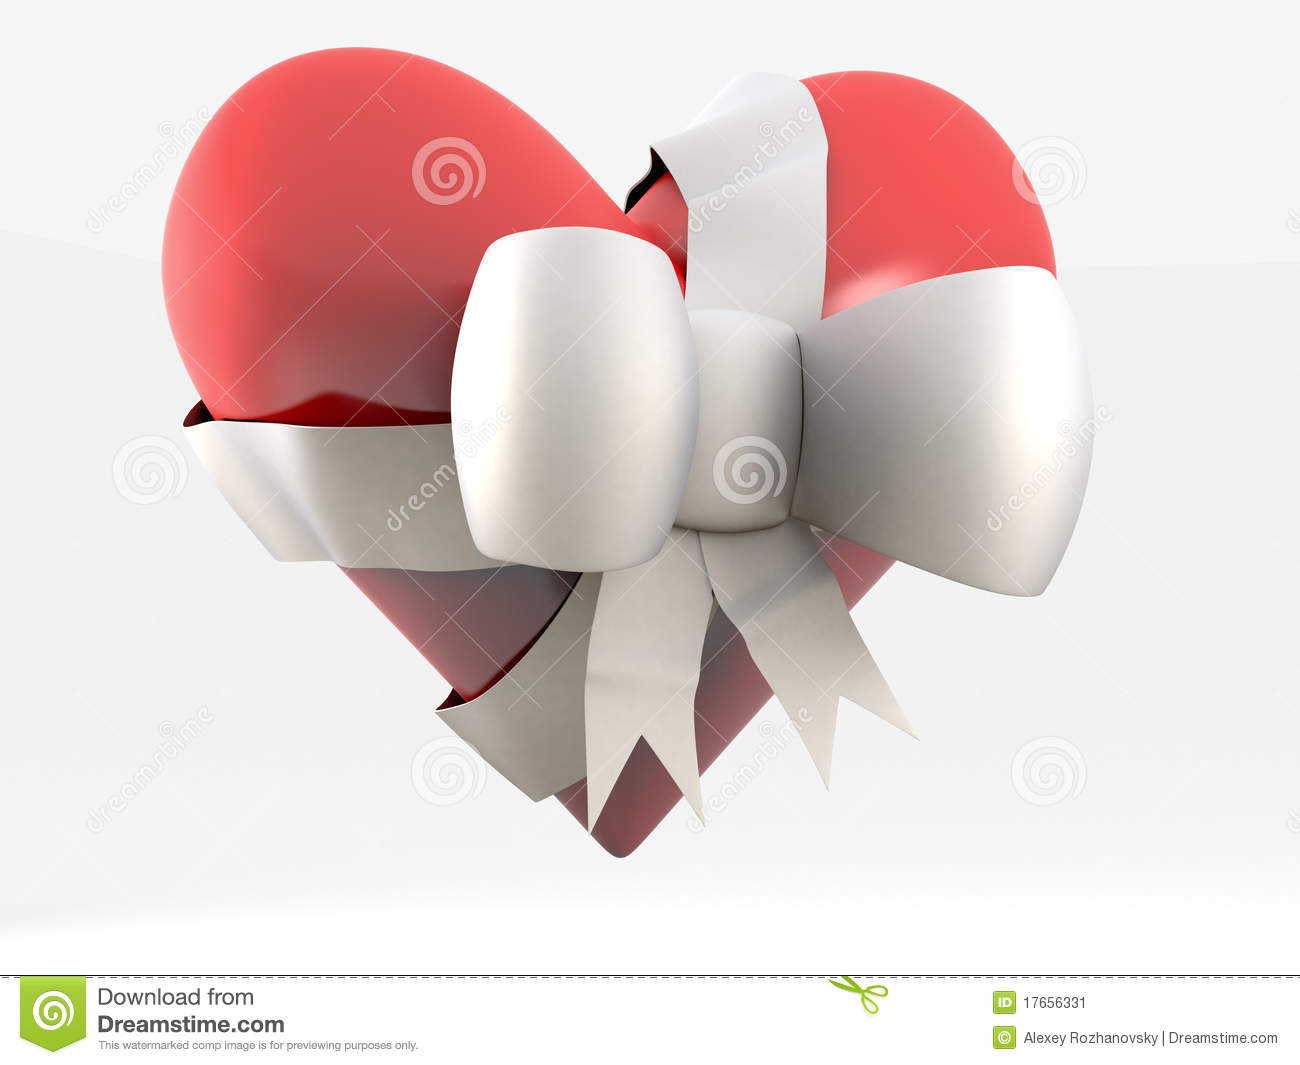 This is a photo of Old Fashioned Hearts With Bows